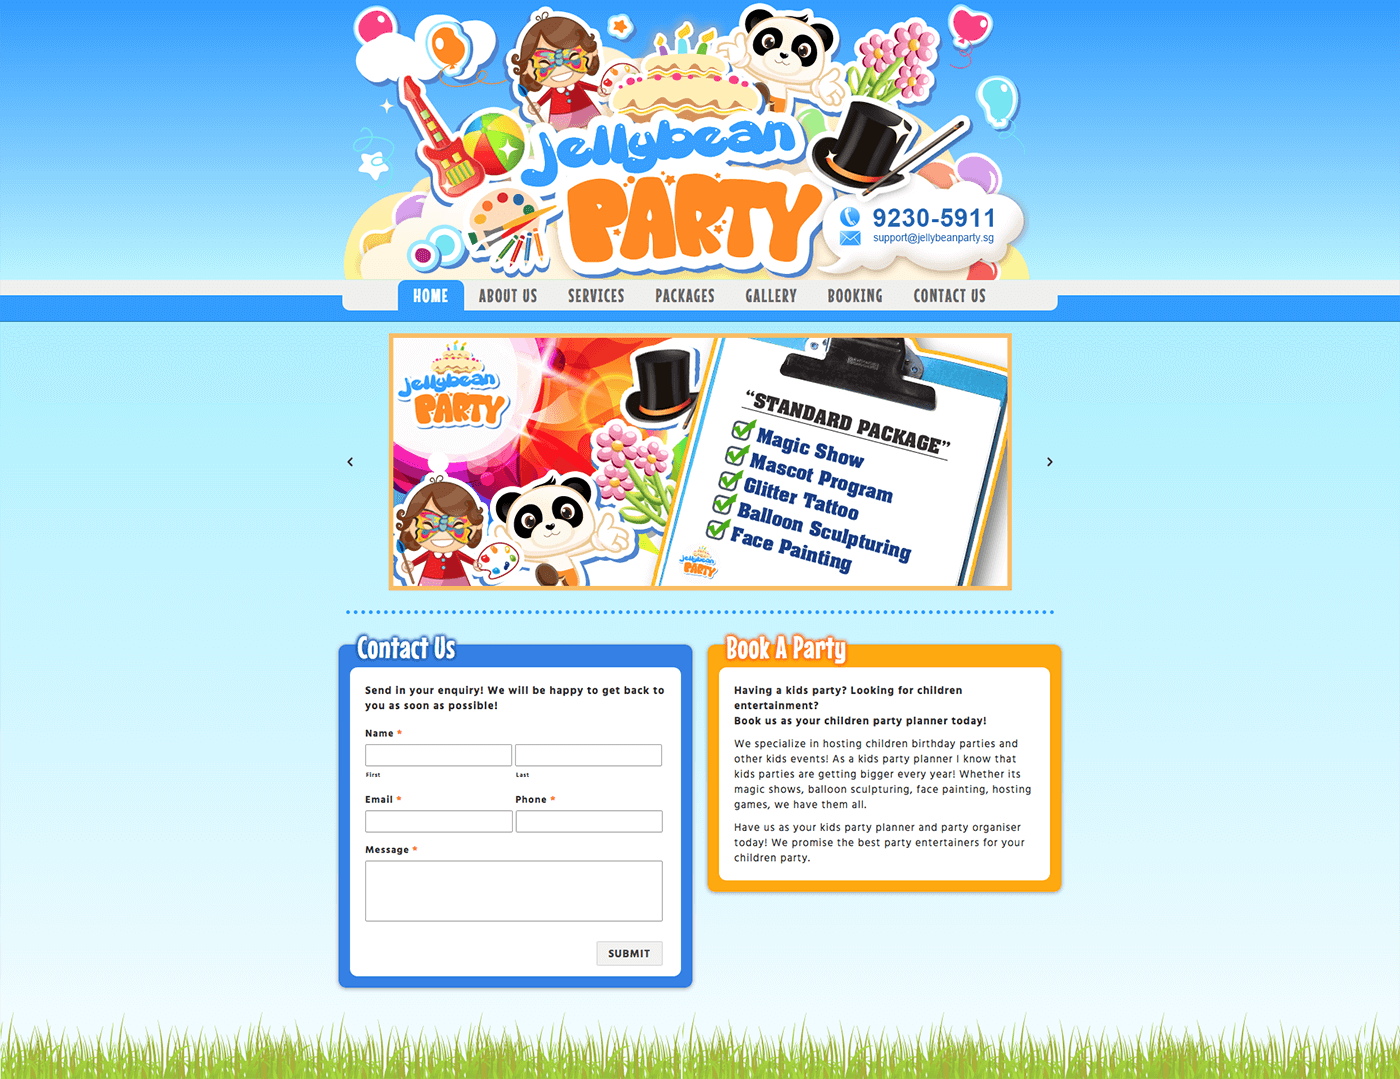 Thinking Notes Projects Showcase - JellyBean Party Website